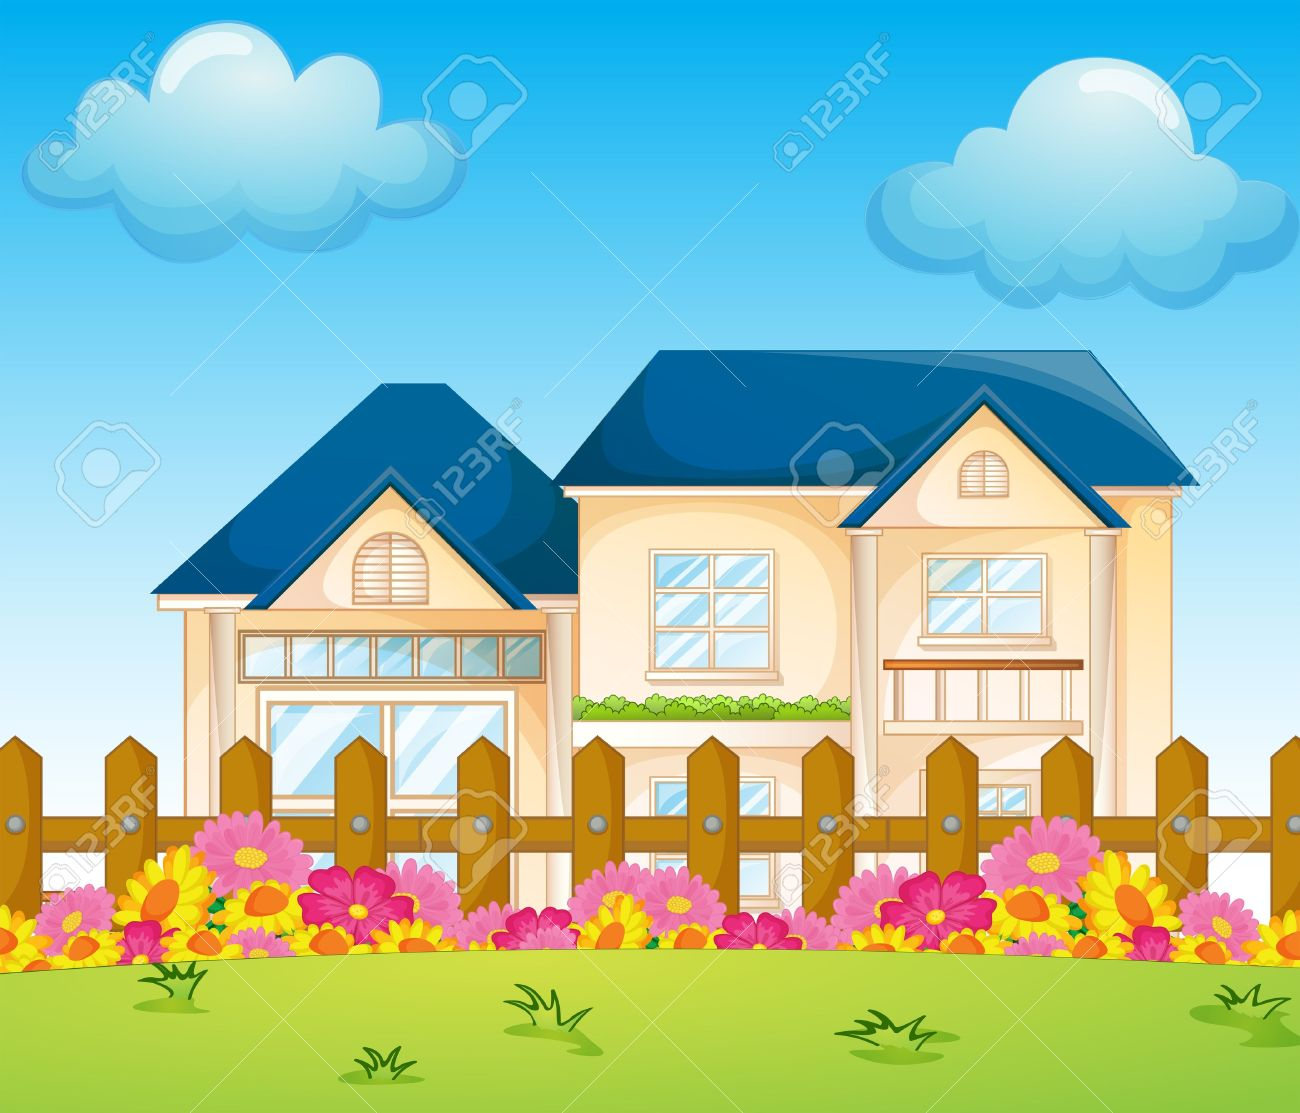 Illustration Of A Concrete House Inside The Fence Royalty Free.